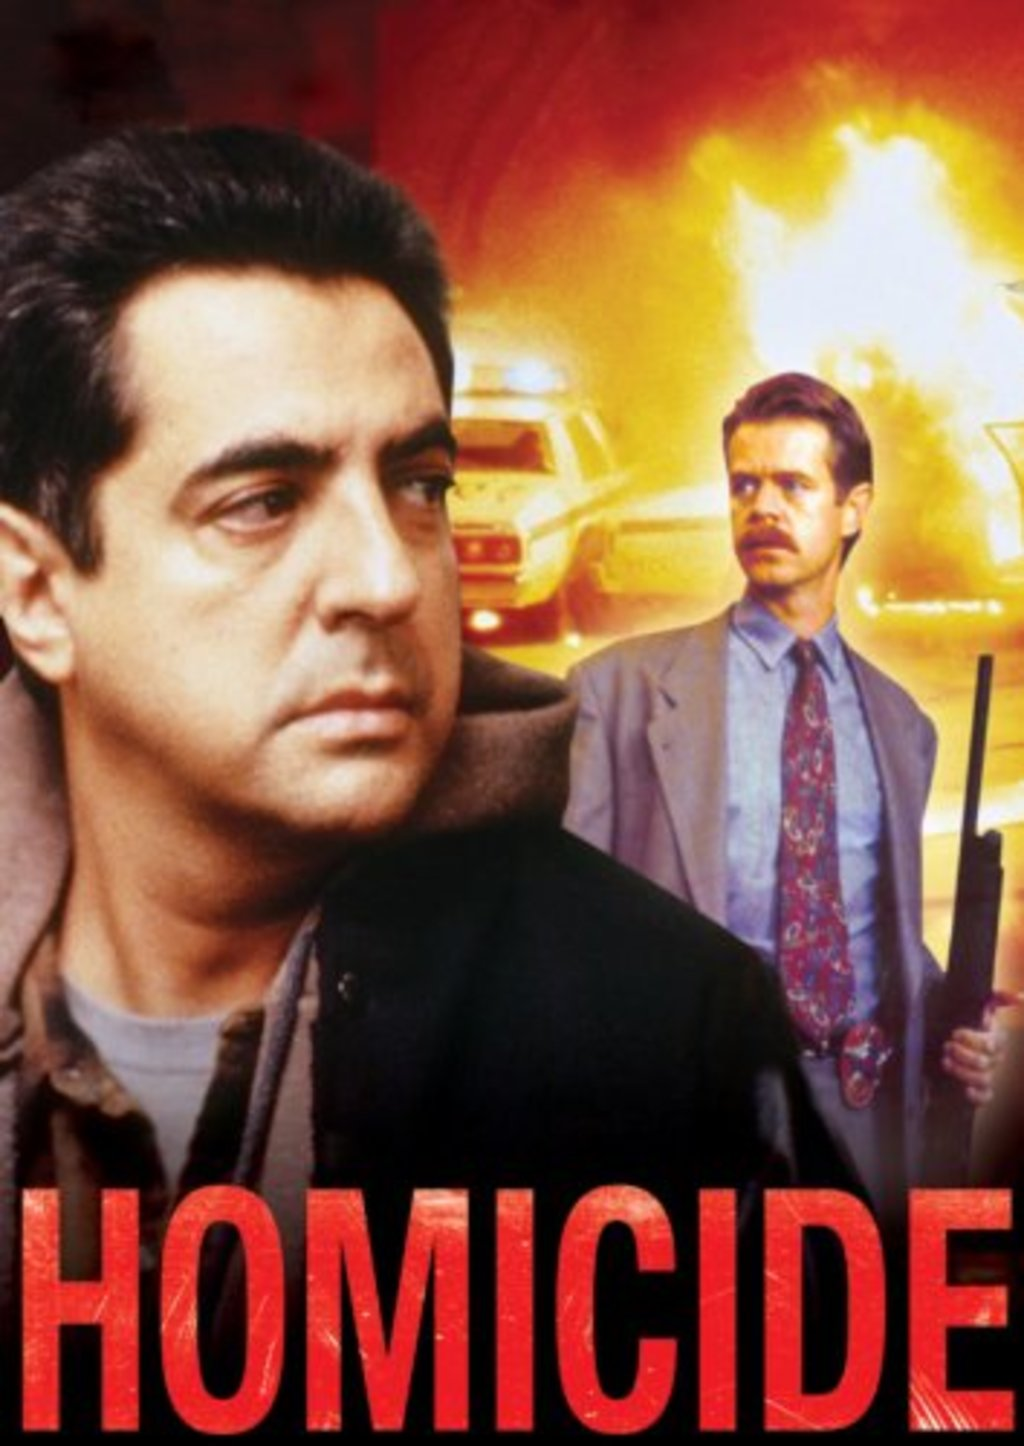 Stiller Butler Watch Homicide On Netflix Today! | Netflixmovies.com